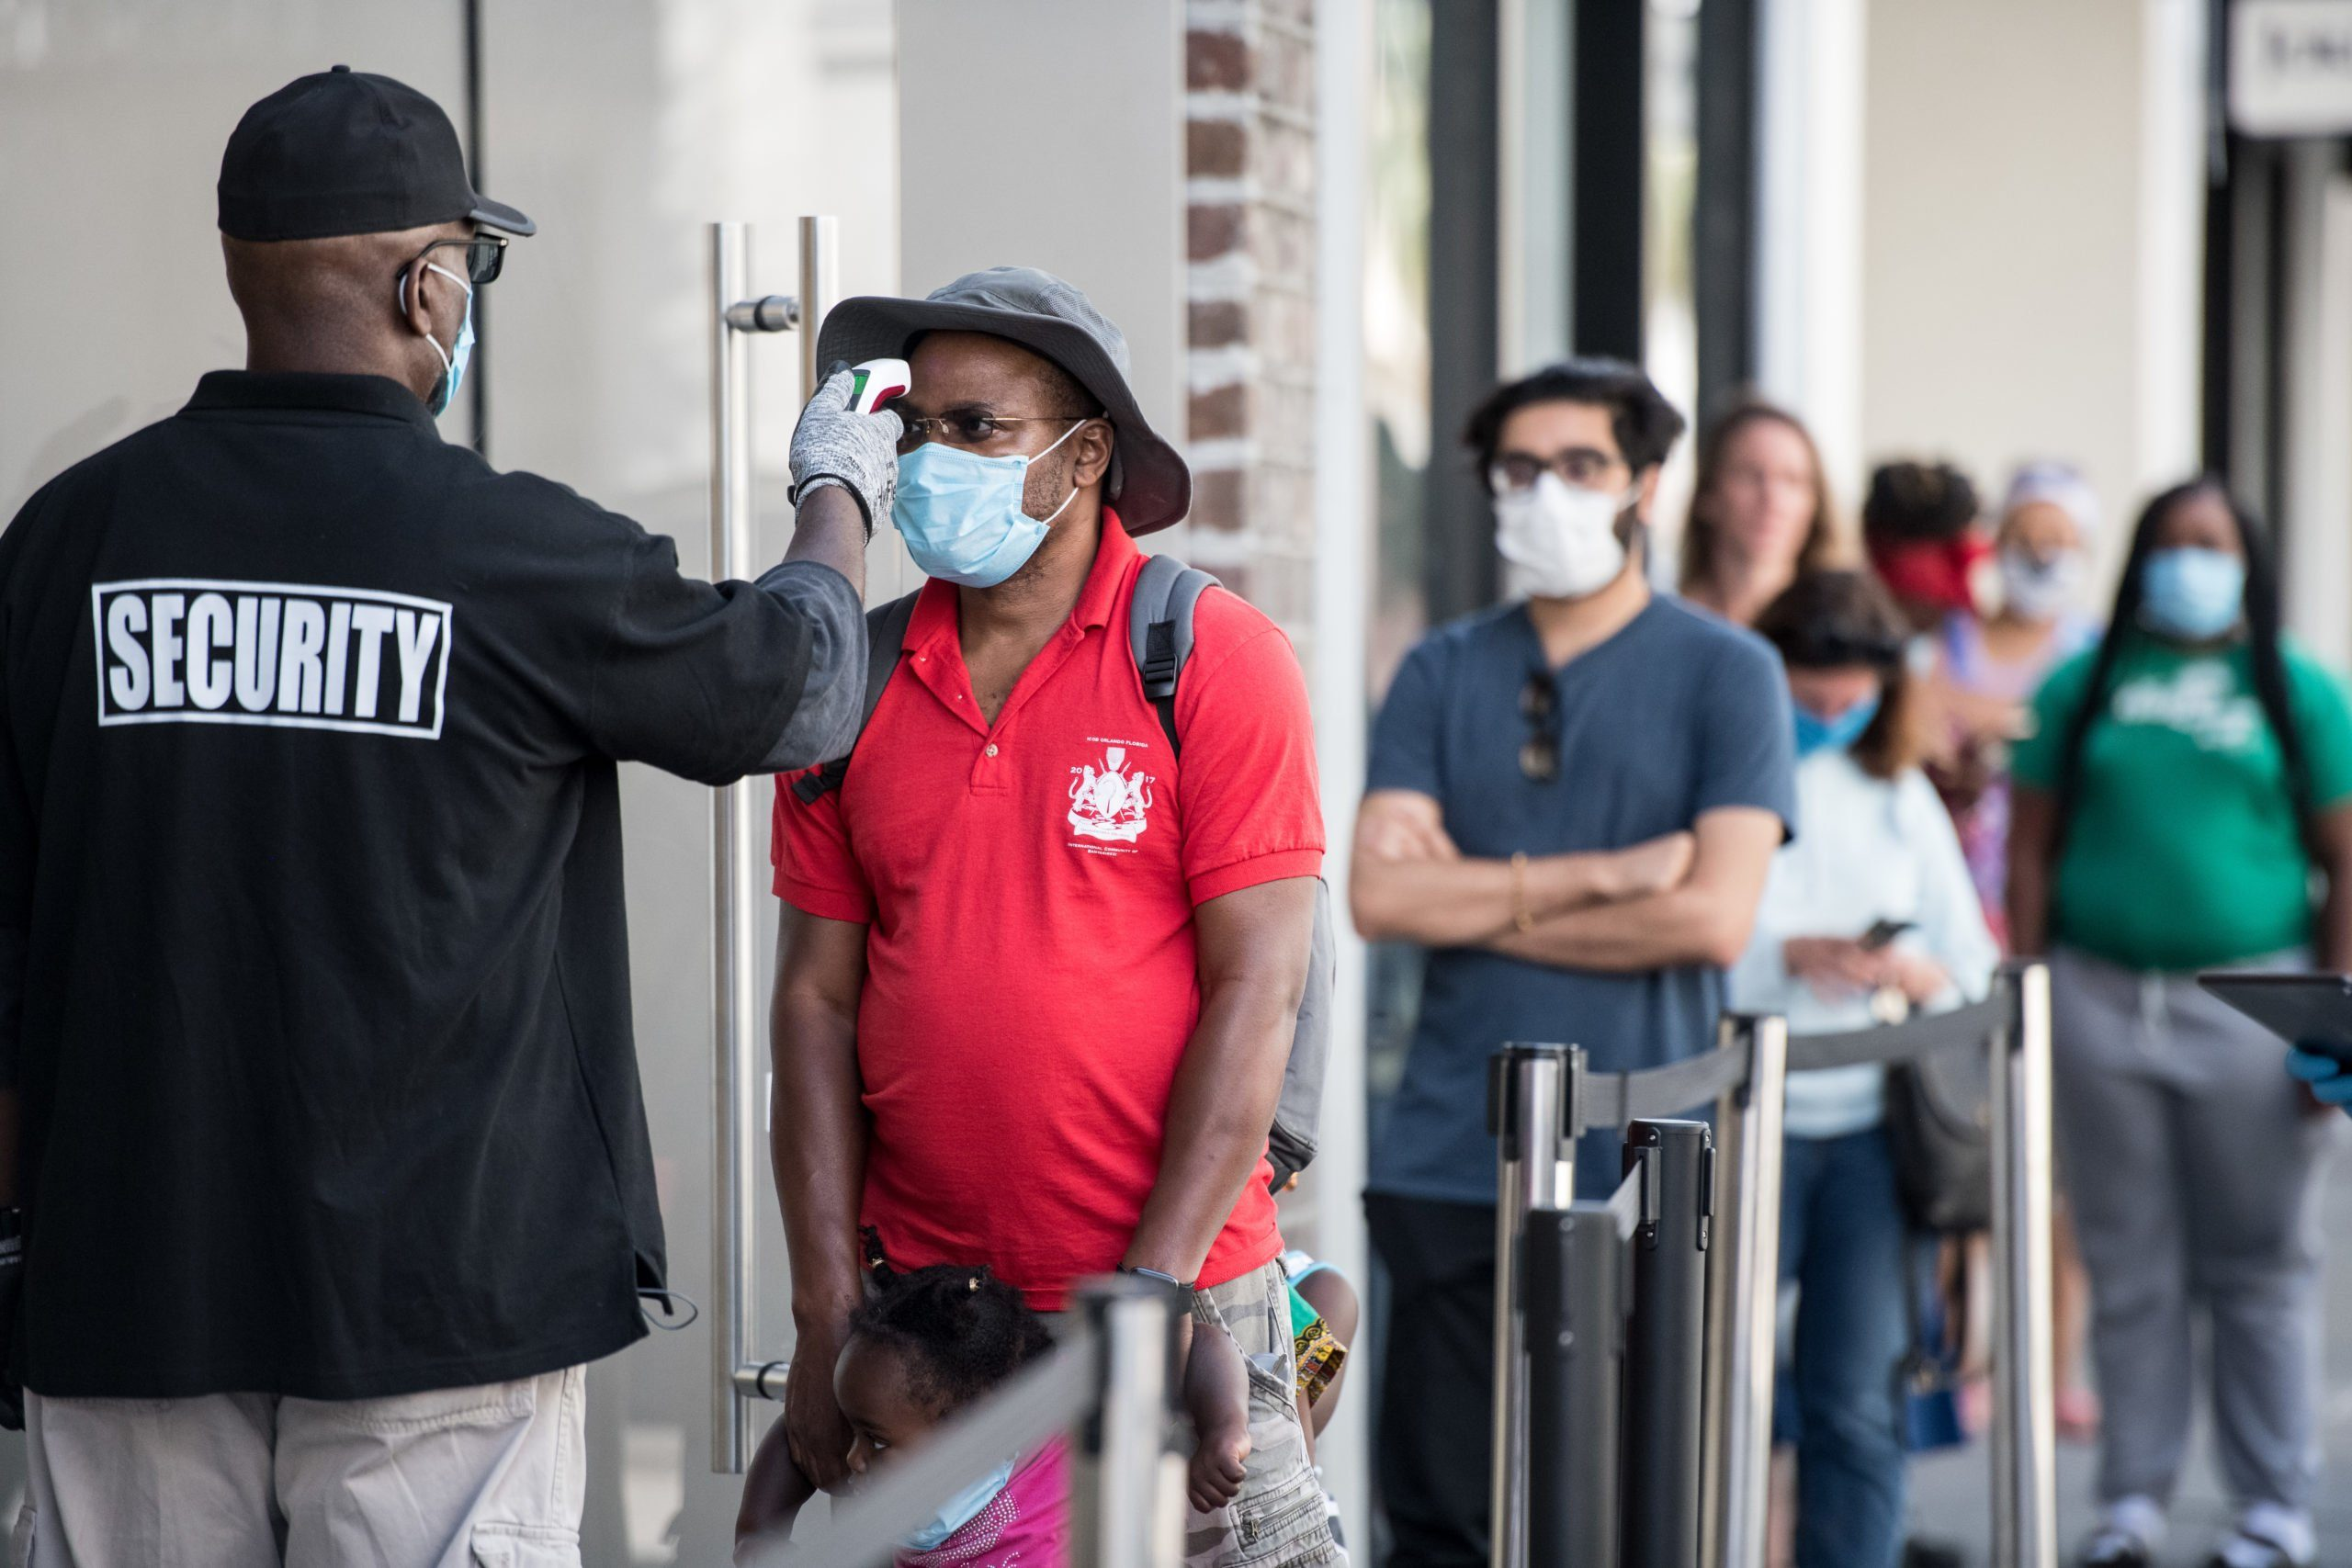 Apple Re-Opens Retail Store In Charleston, SC Amid COVID-19 Pandemic